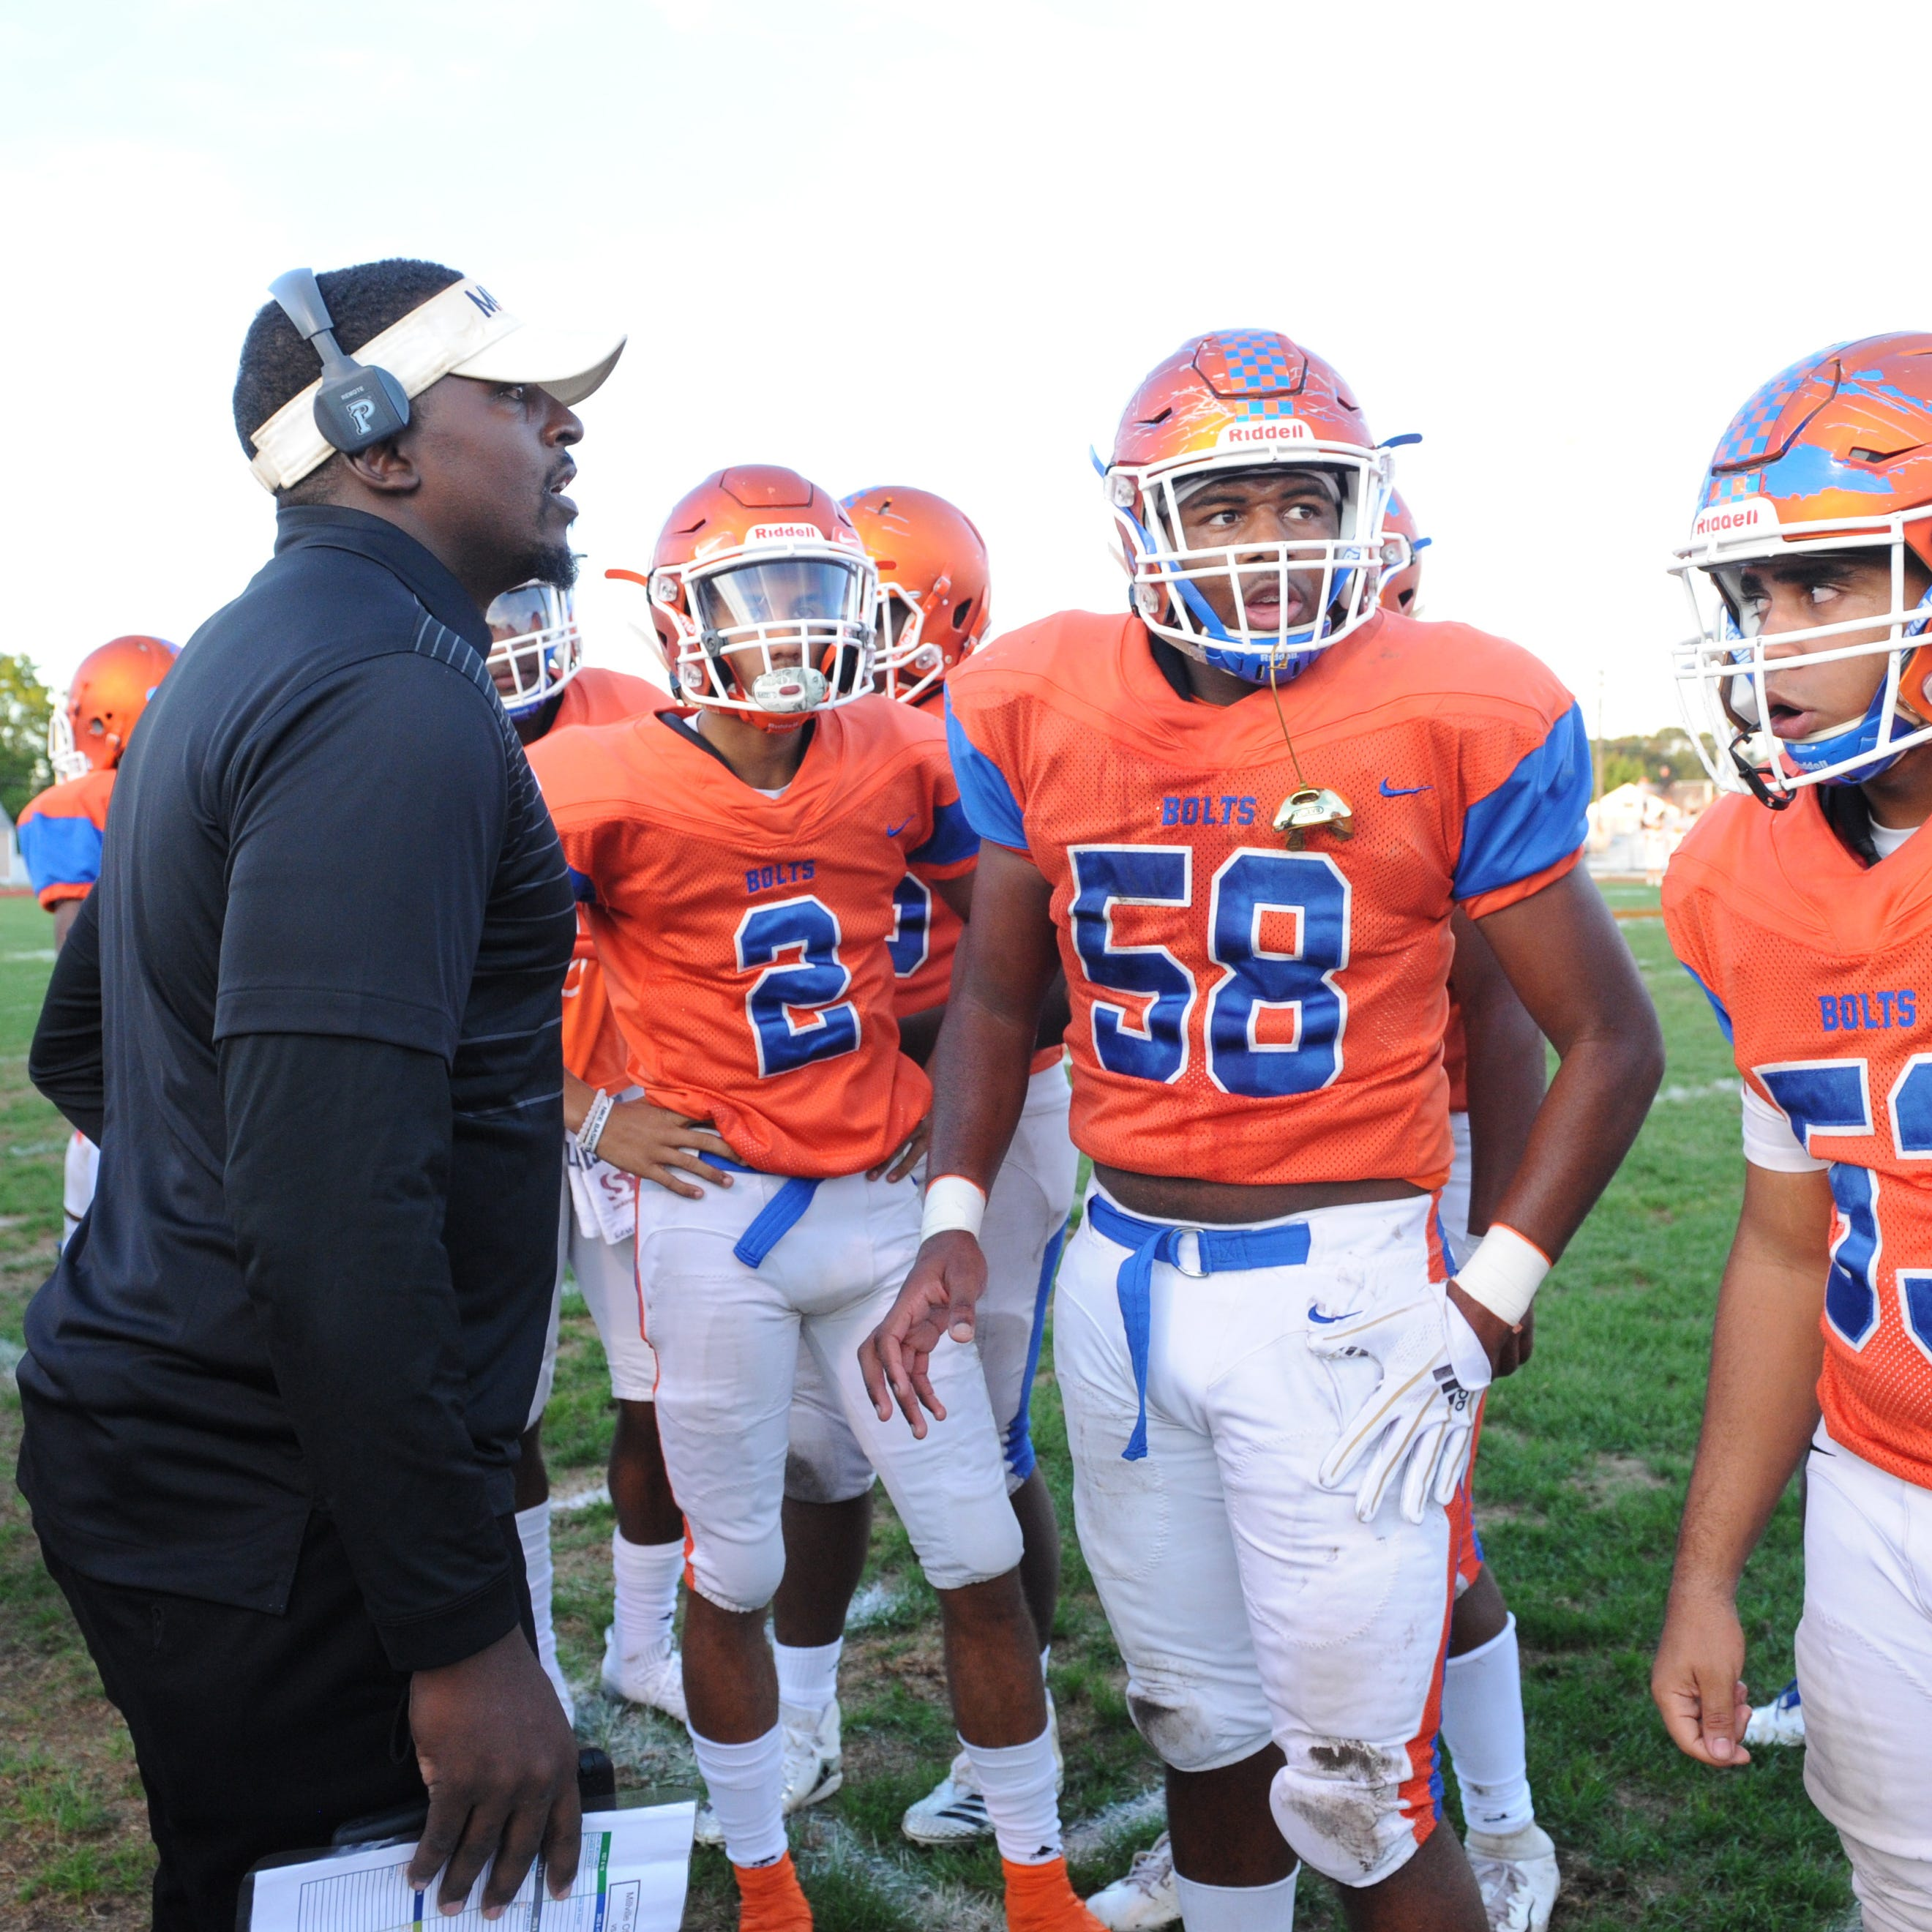 H.S. football: Playoff fever is spreading in Millville, will Vineland be next?